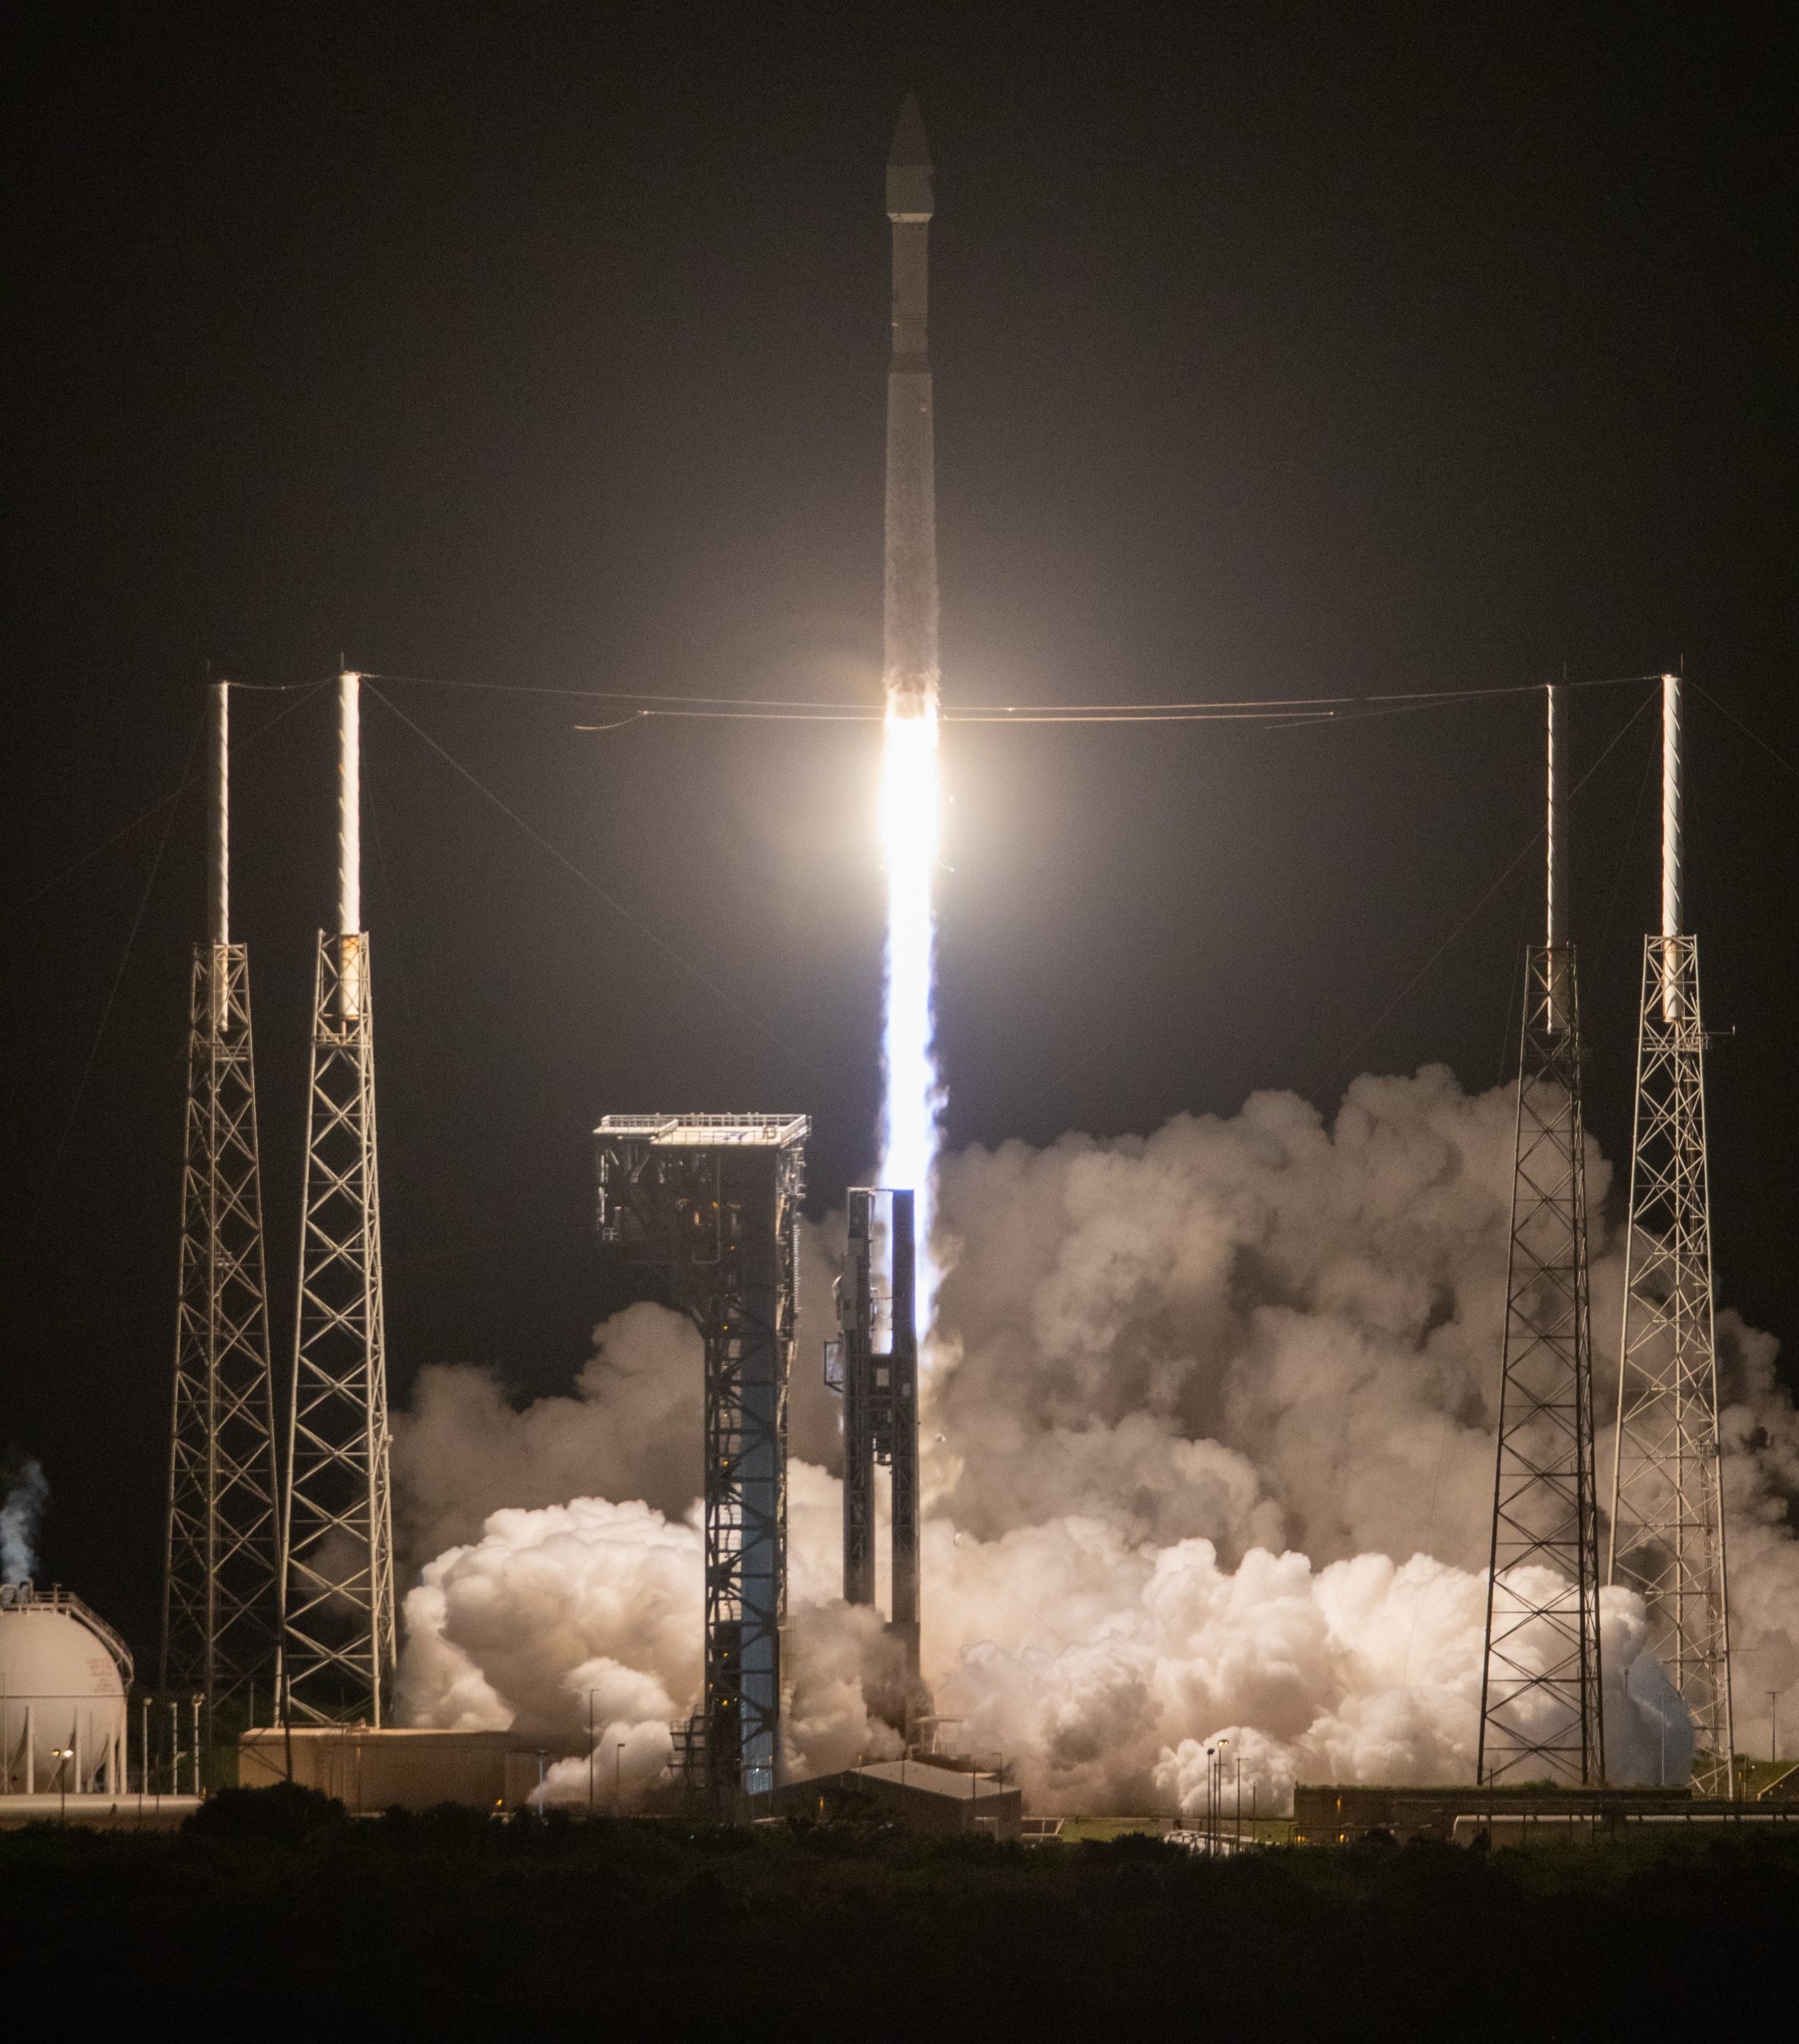 A United Launch Alliance V 401 rocket, with NASA's Lucy spacecraft atop, powers off the pad at Cape Canaveral Space Force Station's Space Launch Complex 41 in Florida at 5:34 a.m. EDT on Saturday, Oct. 16, 2021.